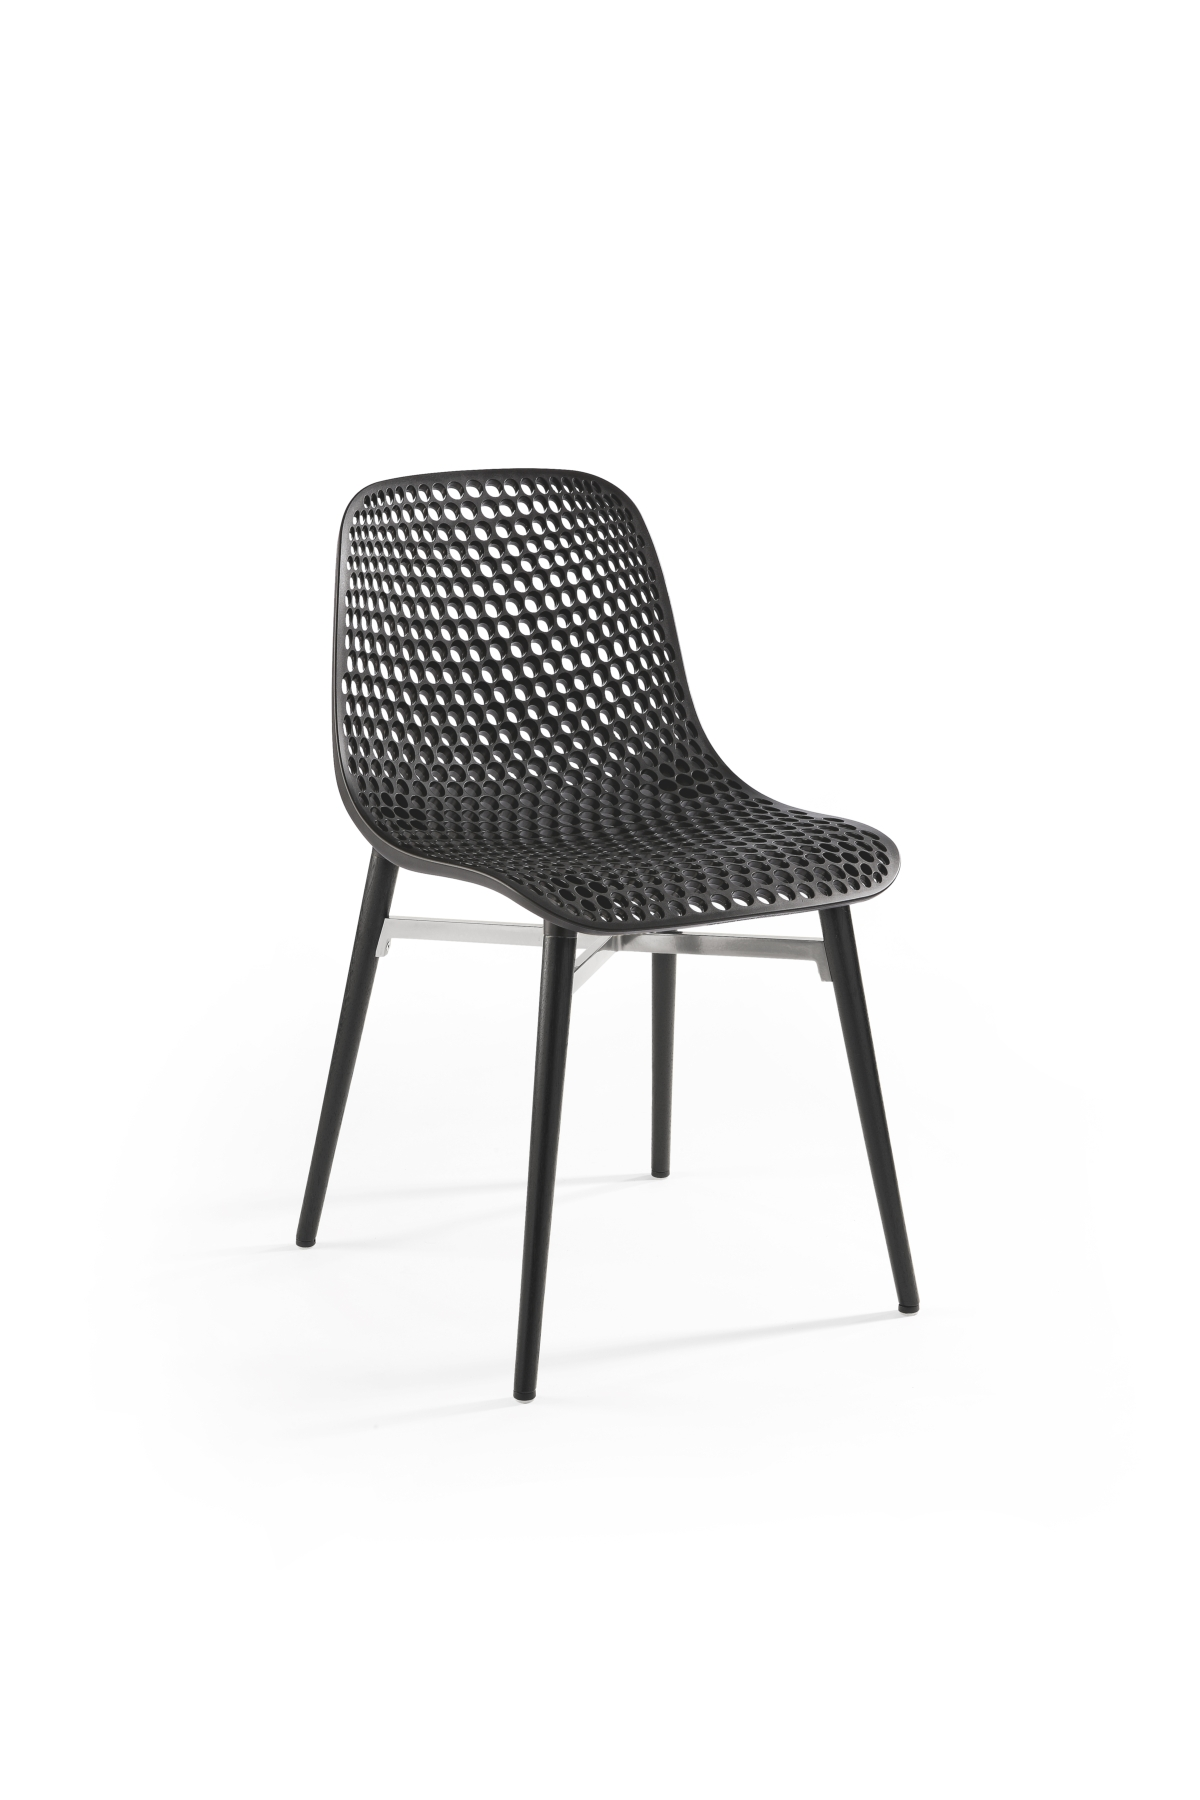 Next Chair, Infiniti Design